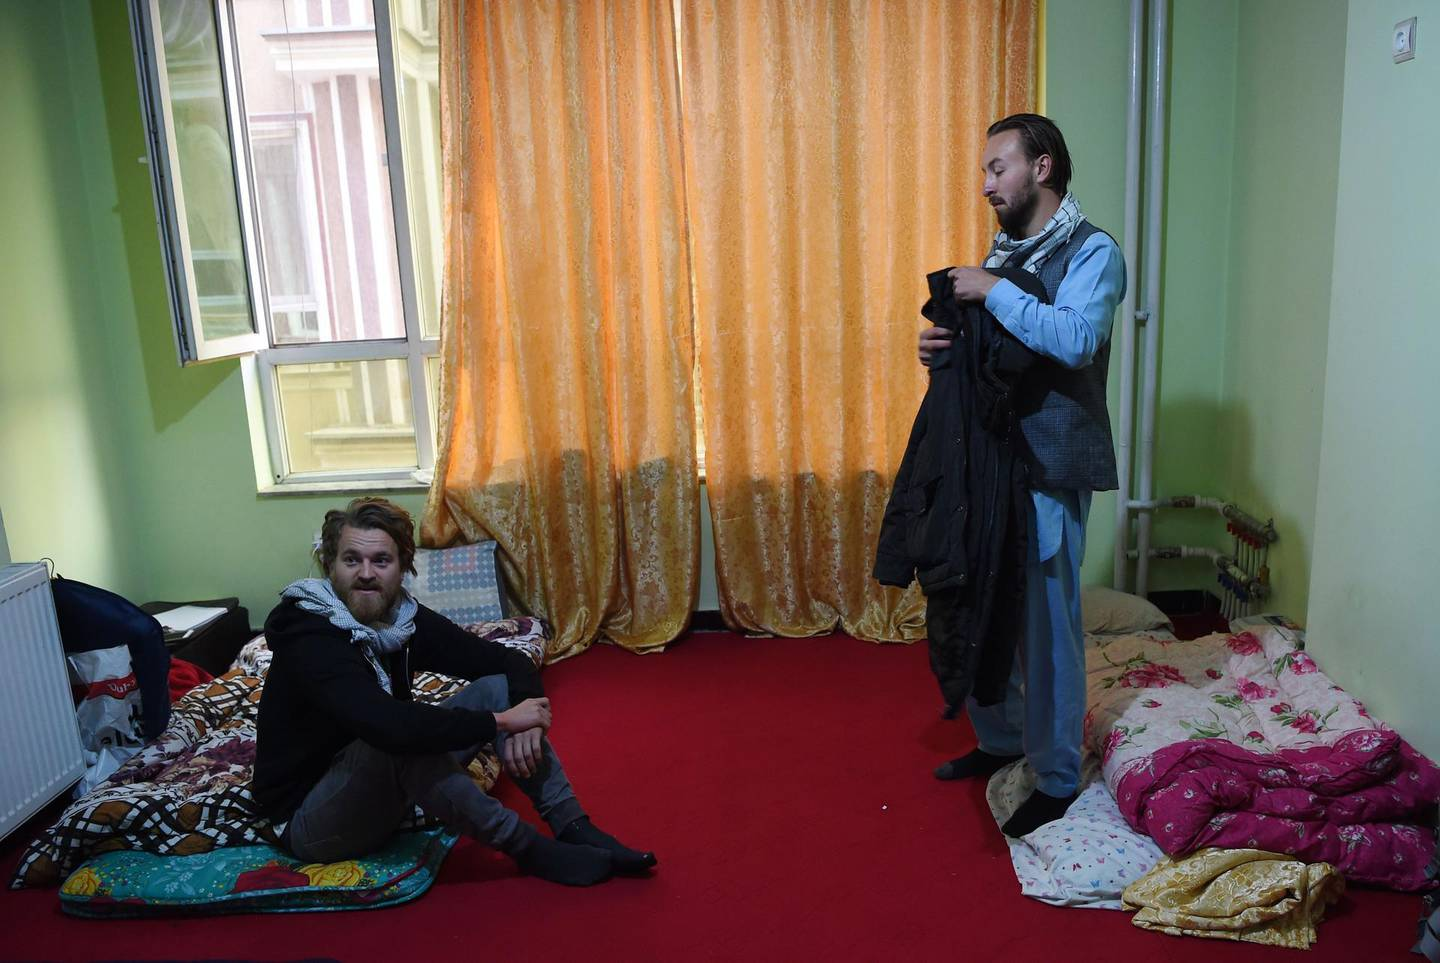 In this photo taken on November 11, 2018, Norwegian tourist Jorn Bjorn Augestad (L), 29, and Dutch tourist Ciaran Barr (R), 24, talk with Afghan Couchsurfing host Naser Majidi (unseen), 27, at a house in Kabul.  Once a popular stop on the well-worn hippy trail between Europe and South Asia in the 1970s, Afghanistan has seen the number of foreign travellers crossing its borders dwindle in the past four decades of almost non-stop conflict. But dozens still make the dangerous journey every year, ignoring clear warnings from their own governments to stay away from a country infested with suicide attackers, kidnappers and armed robbers, and which by some estimates is now the world's deadliest conflict zone.  - TO GO WITH AFP STORY AFGHANISTAN-LEISURE,FEATURE BY ALLISON JACKSON  / AFP / WAKIL KOHSAR / TO GO WITH AFP STORY AFGHANISTAN-LEISURE,FEATURE BY ALLISON JACKSON